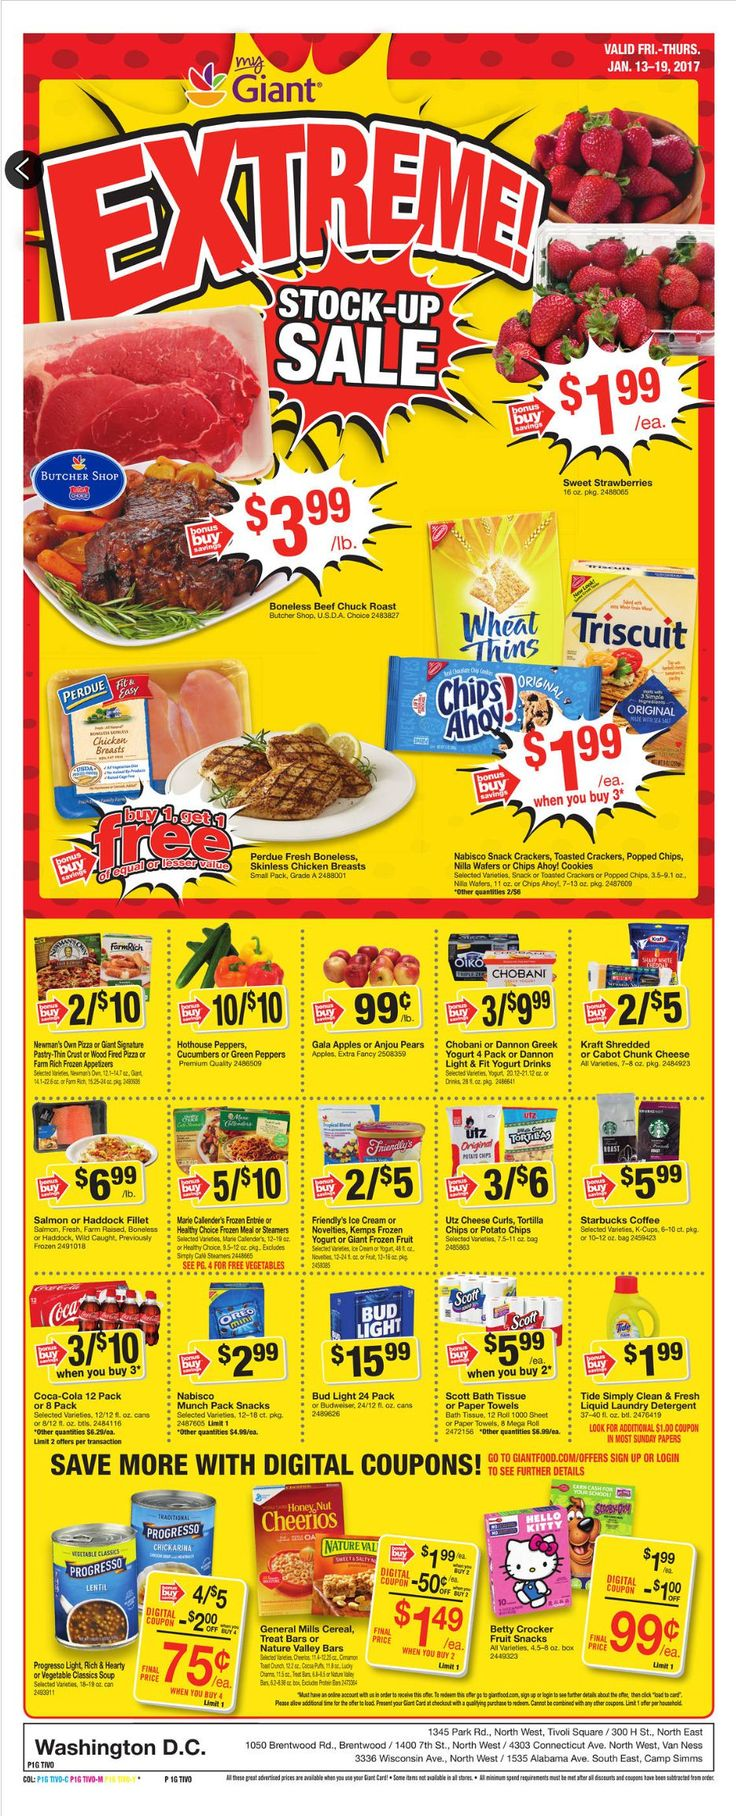 Giant Food Weekly Ad January 13 - 19, 2017 - http://www.olcatalog.com/grocery/giant-food-weekly-ad.html